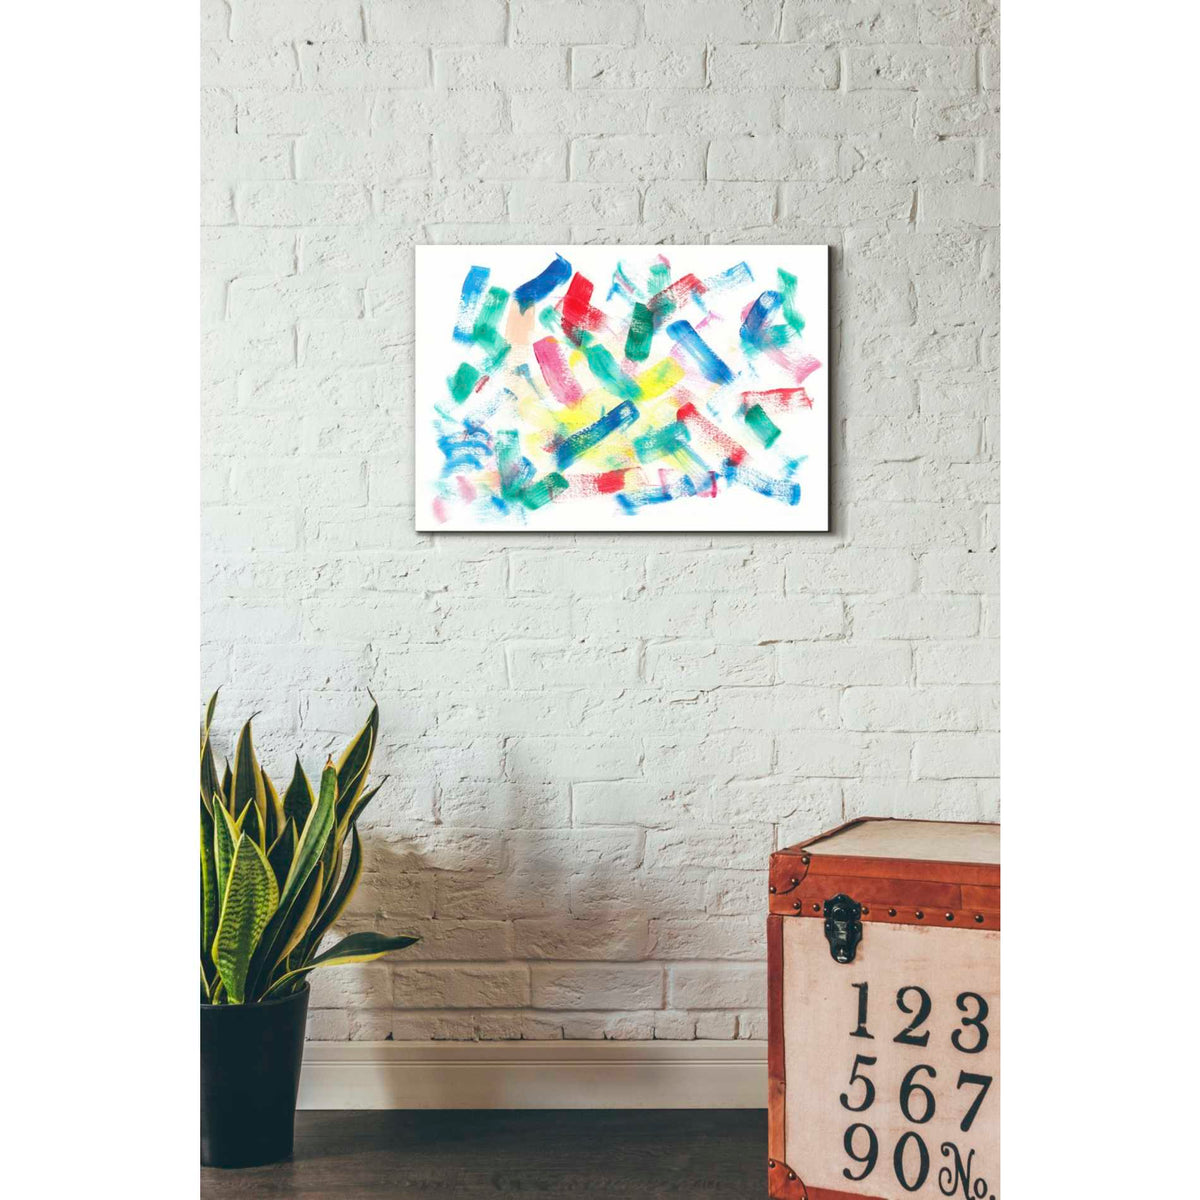 Epic Graffiti 'Olivye' Giclee Canvas Wall Art